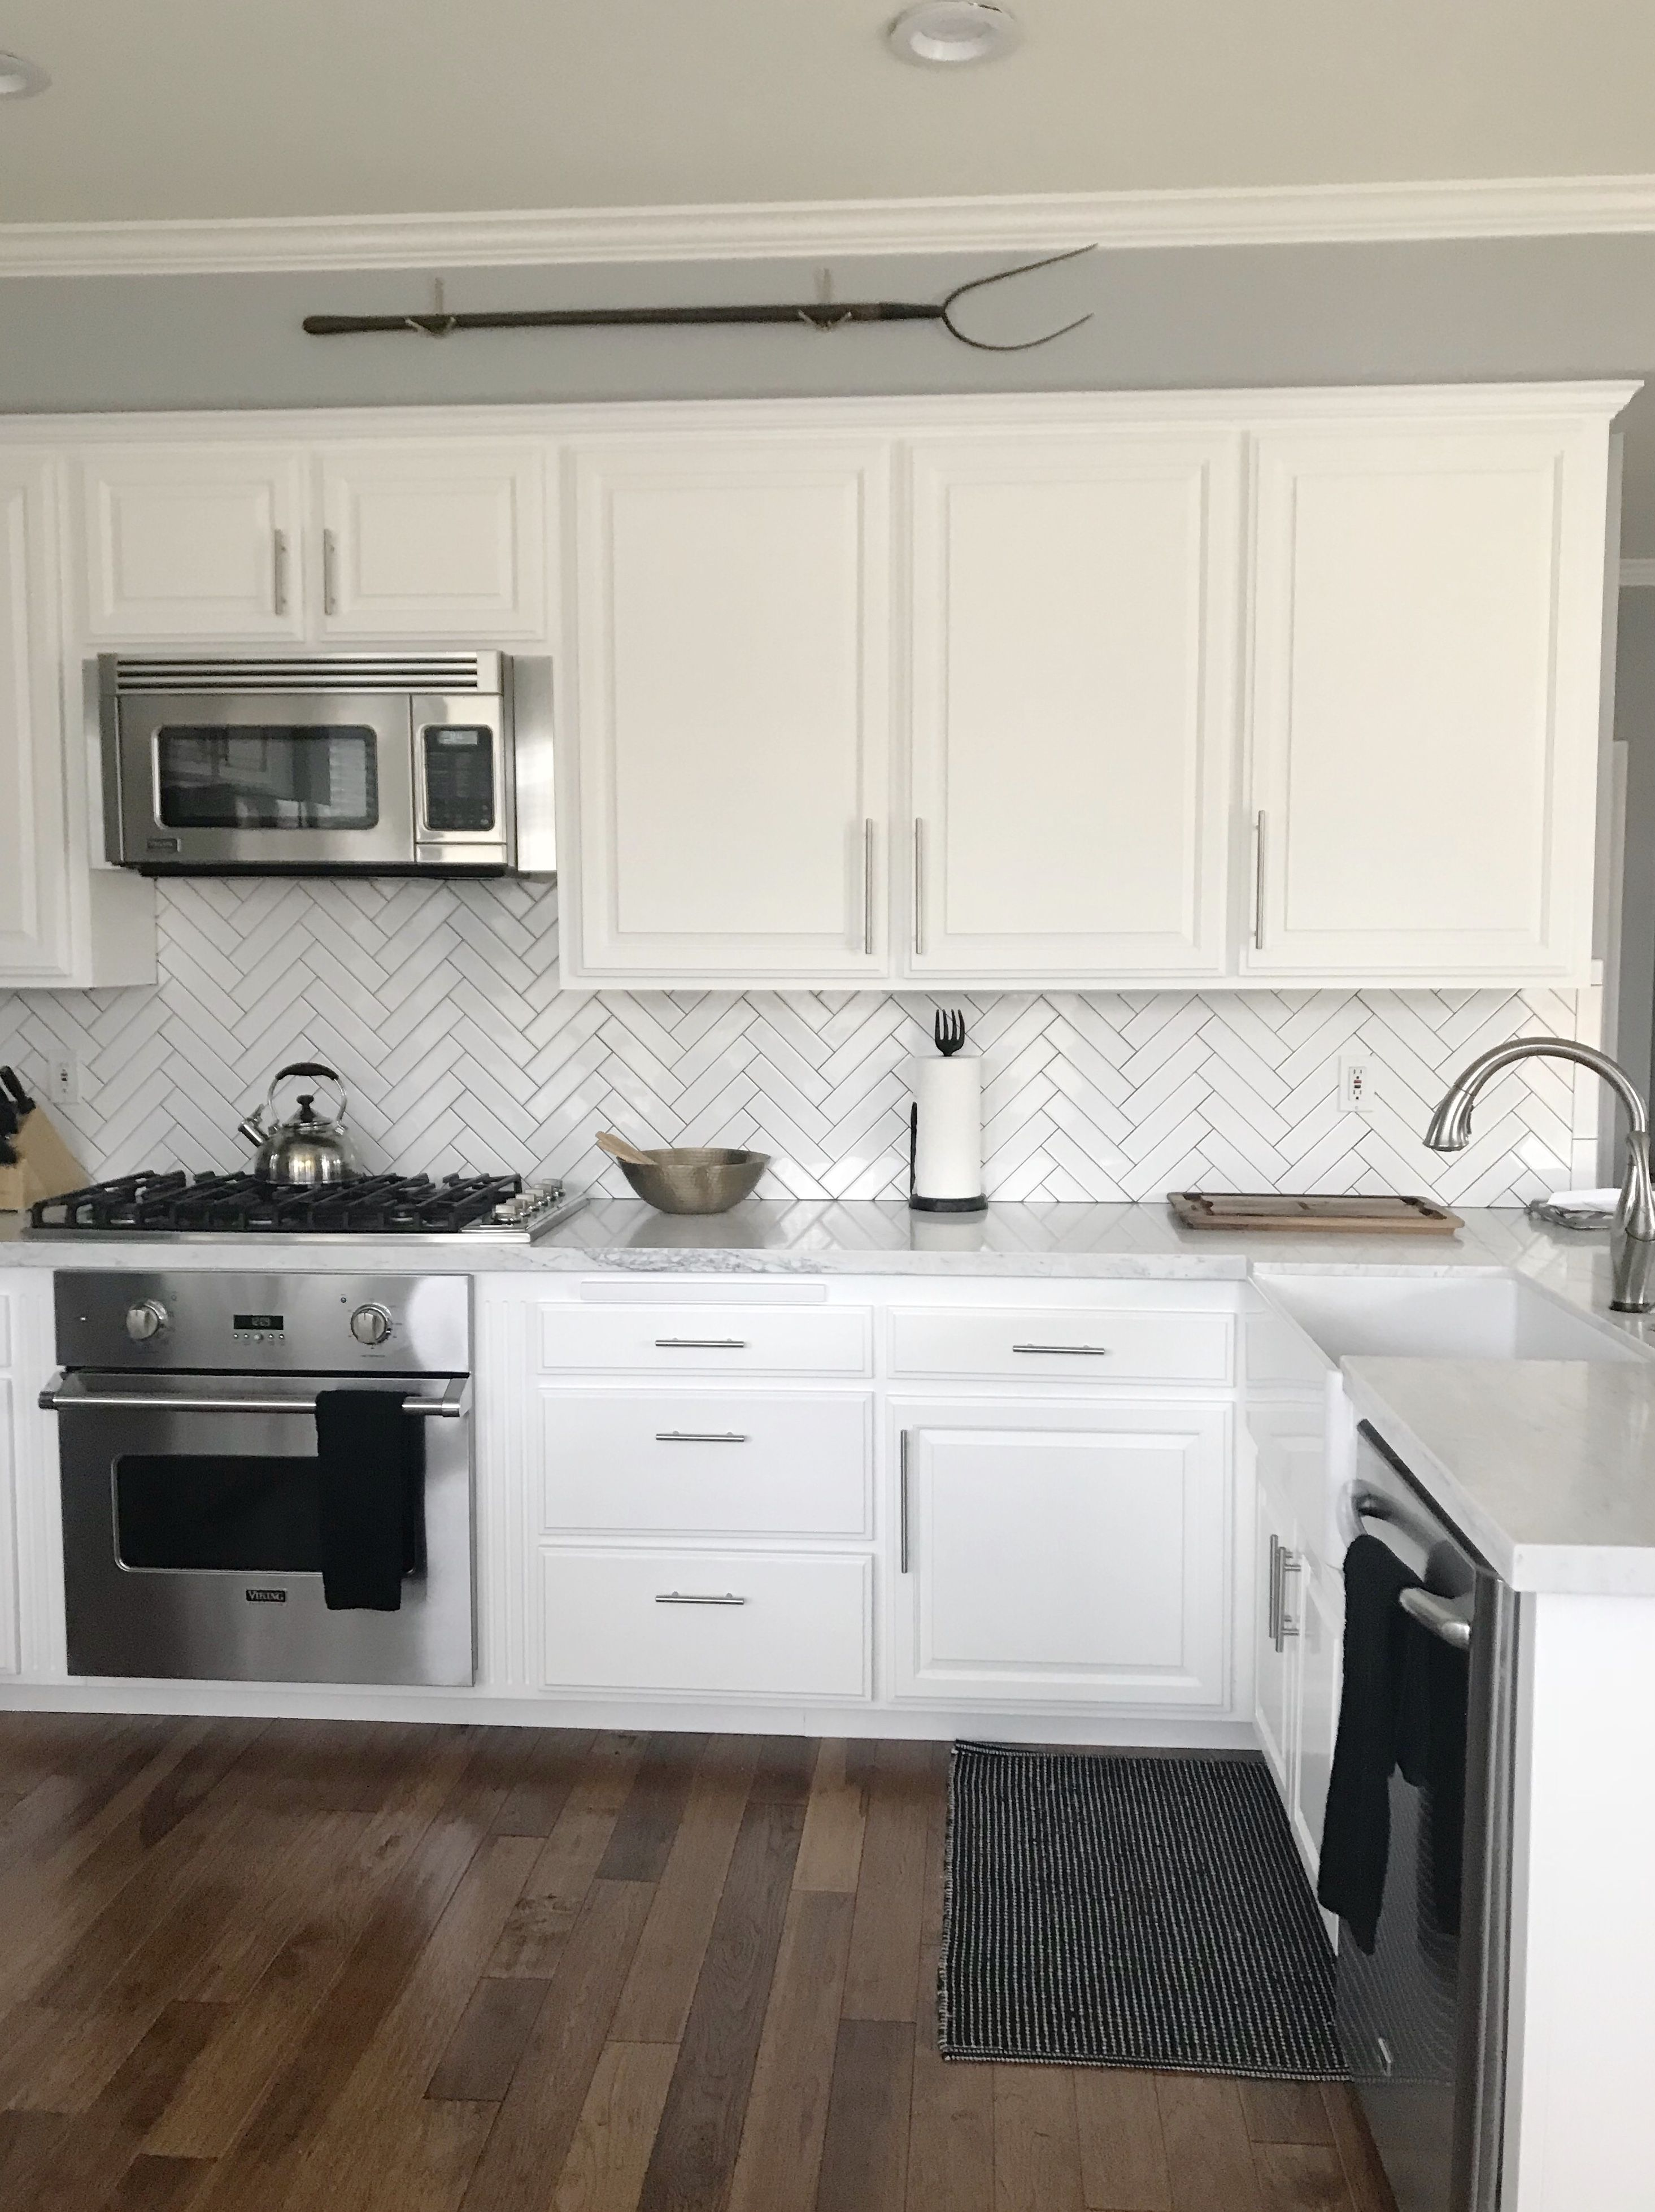 White Cabinets With White Carrera Marble Farm House Sink